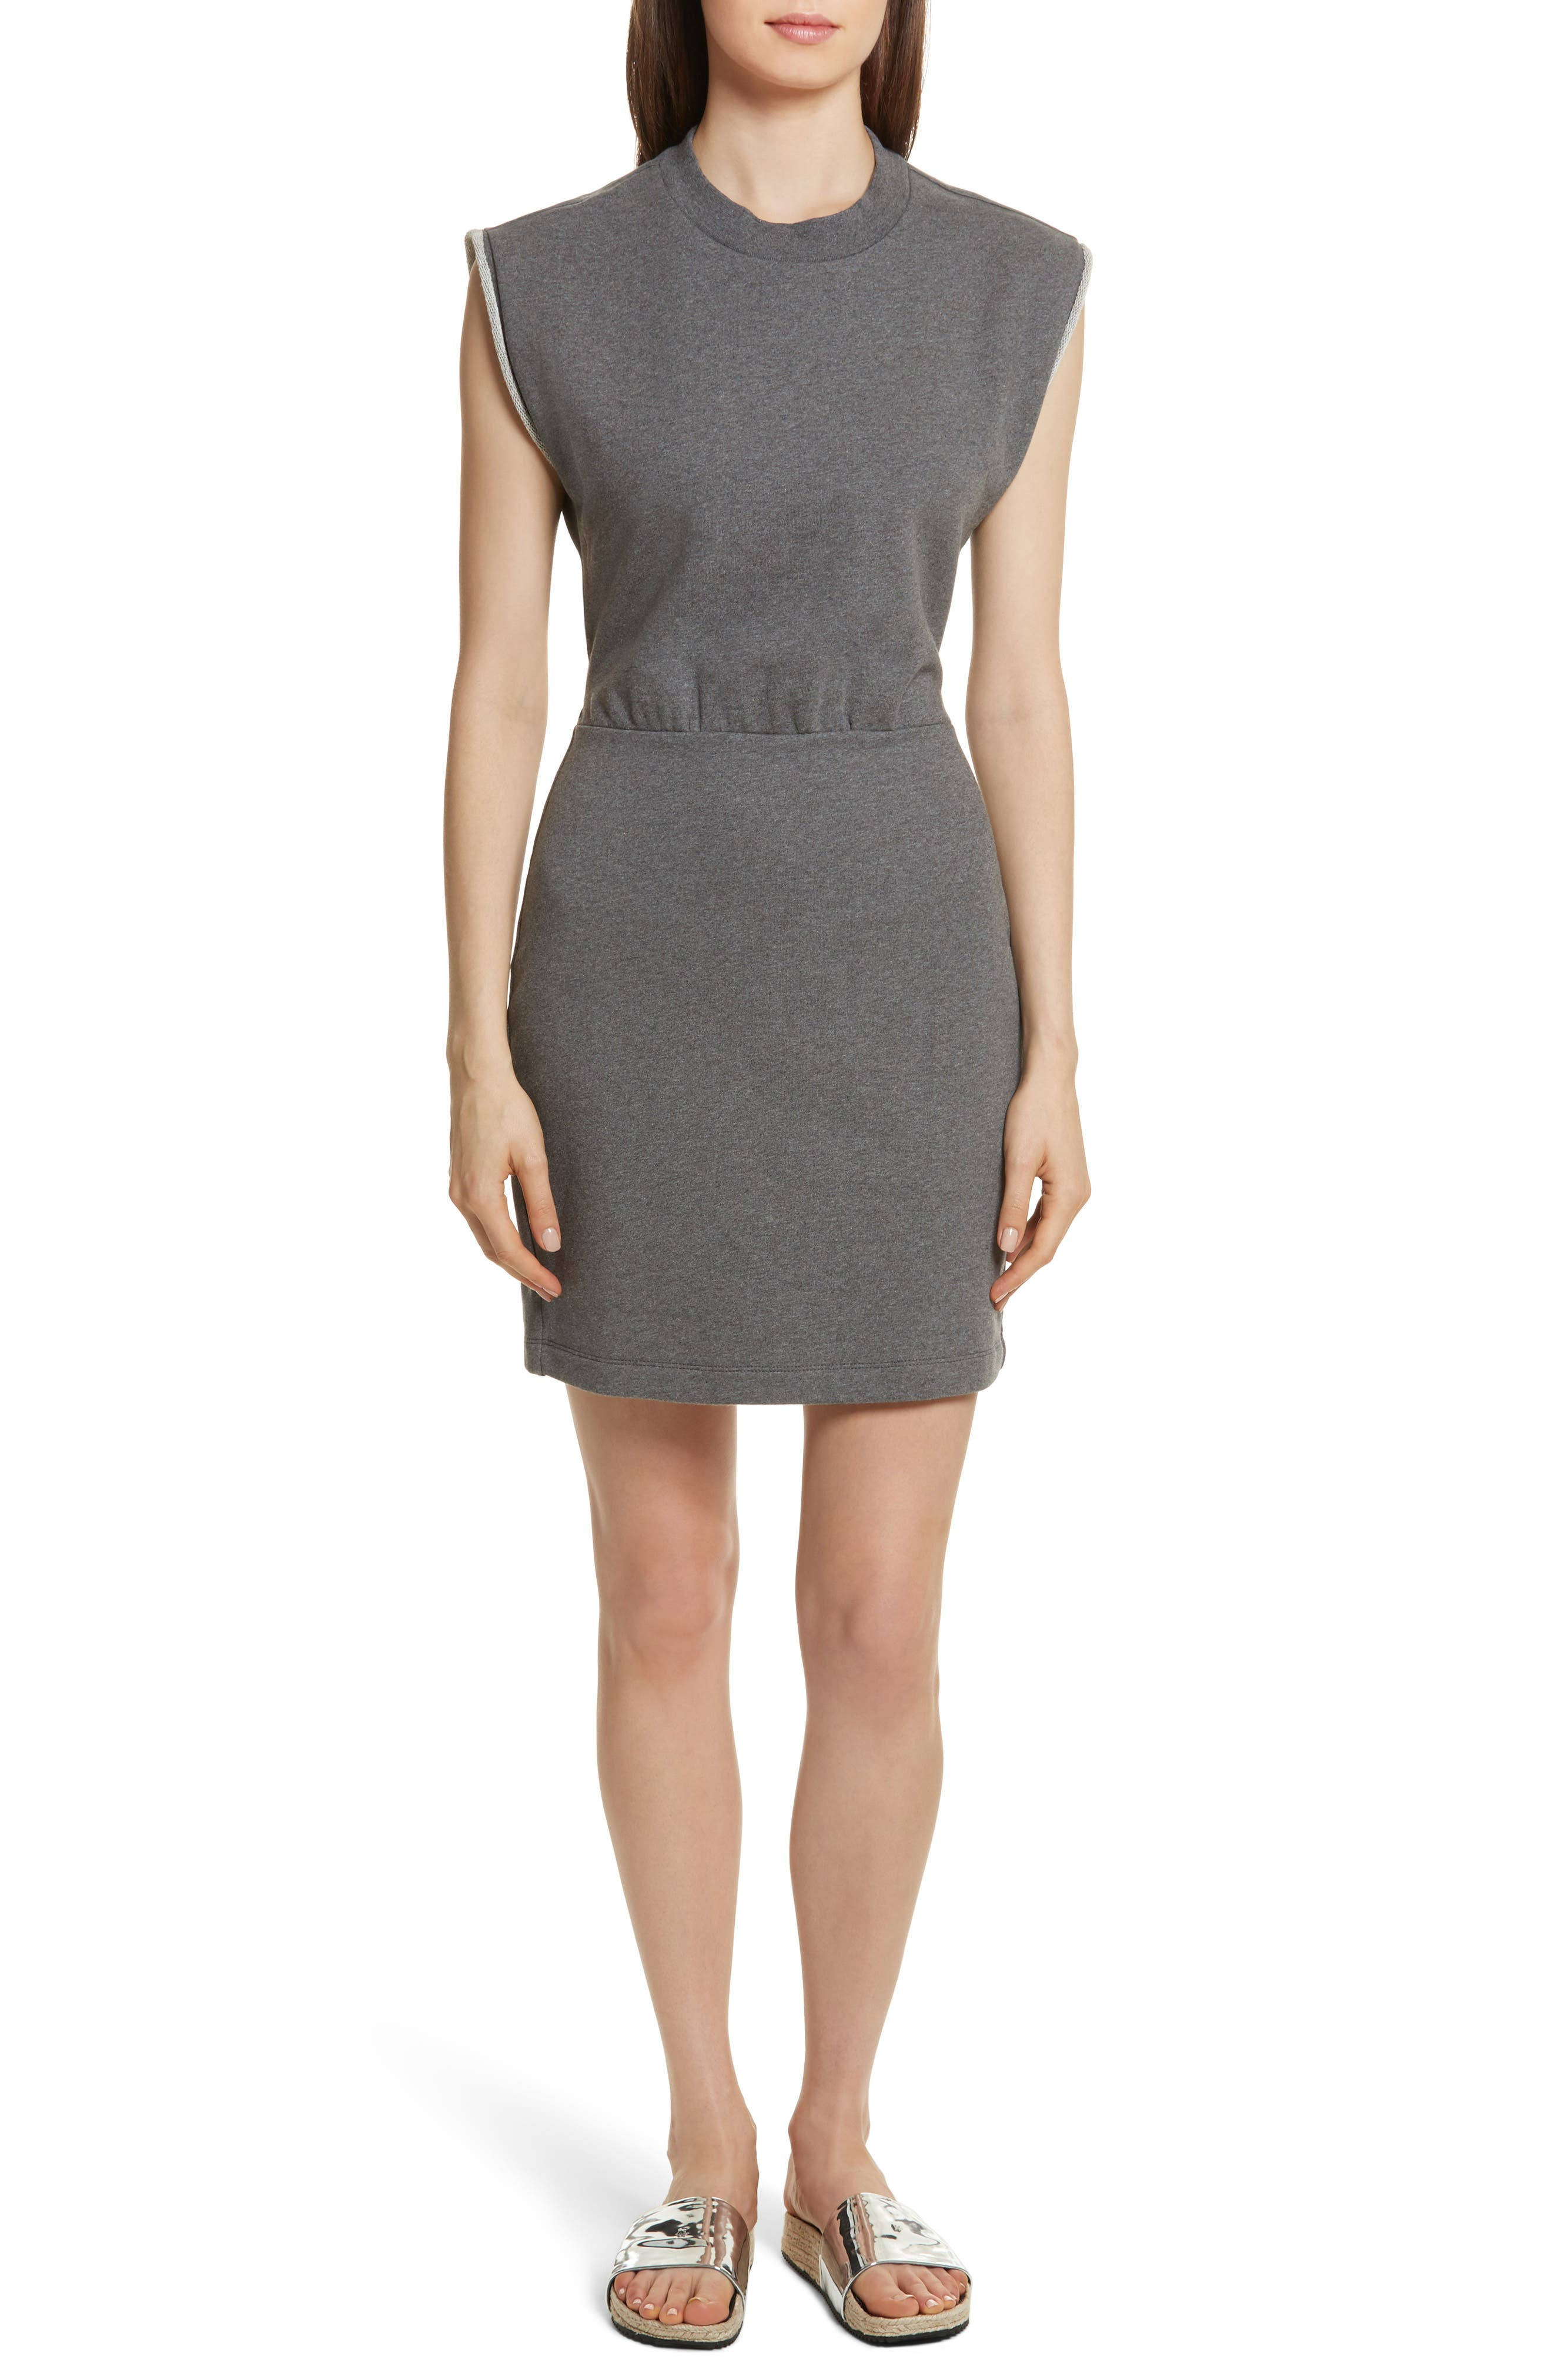 French Terry Dress,                             Main thumbnail 1, color,                             020